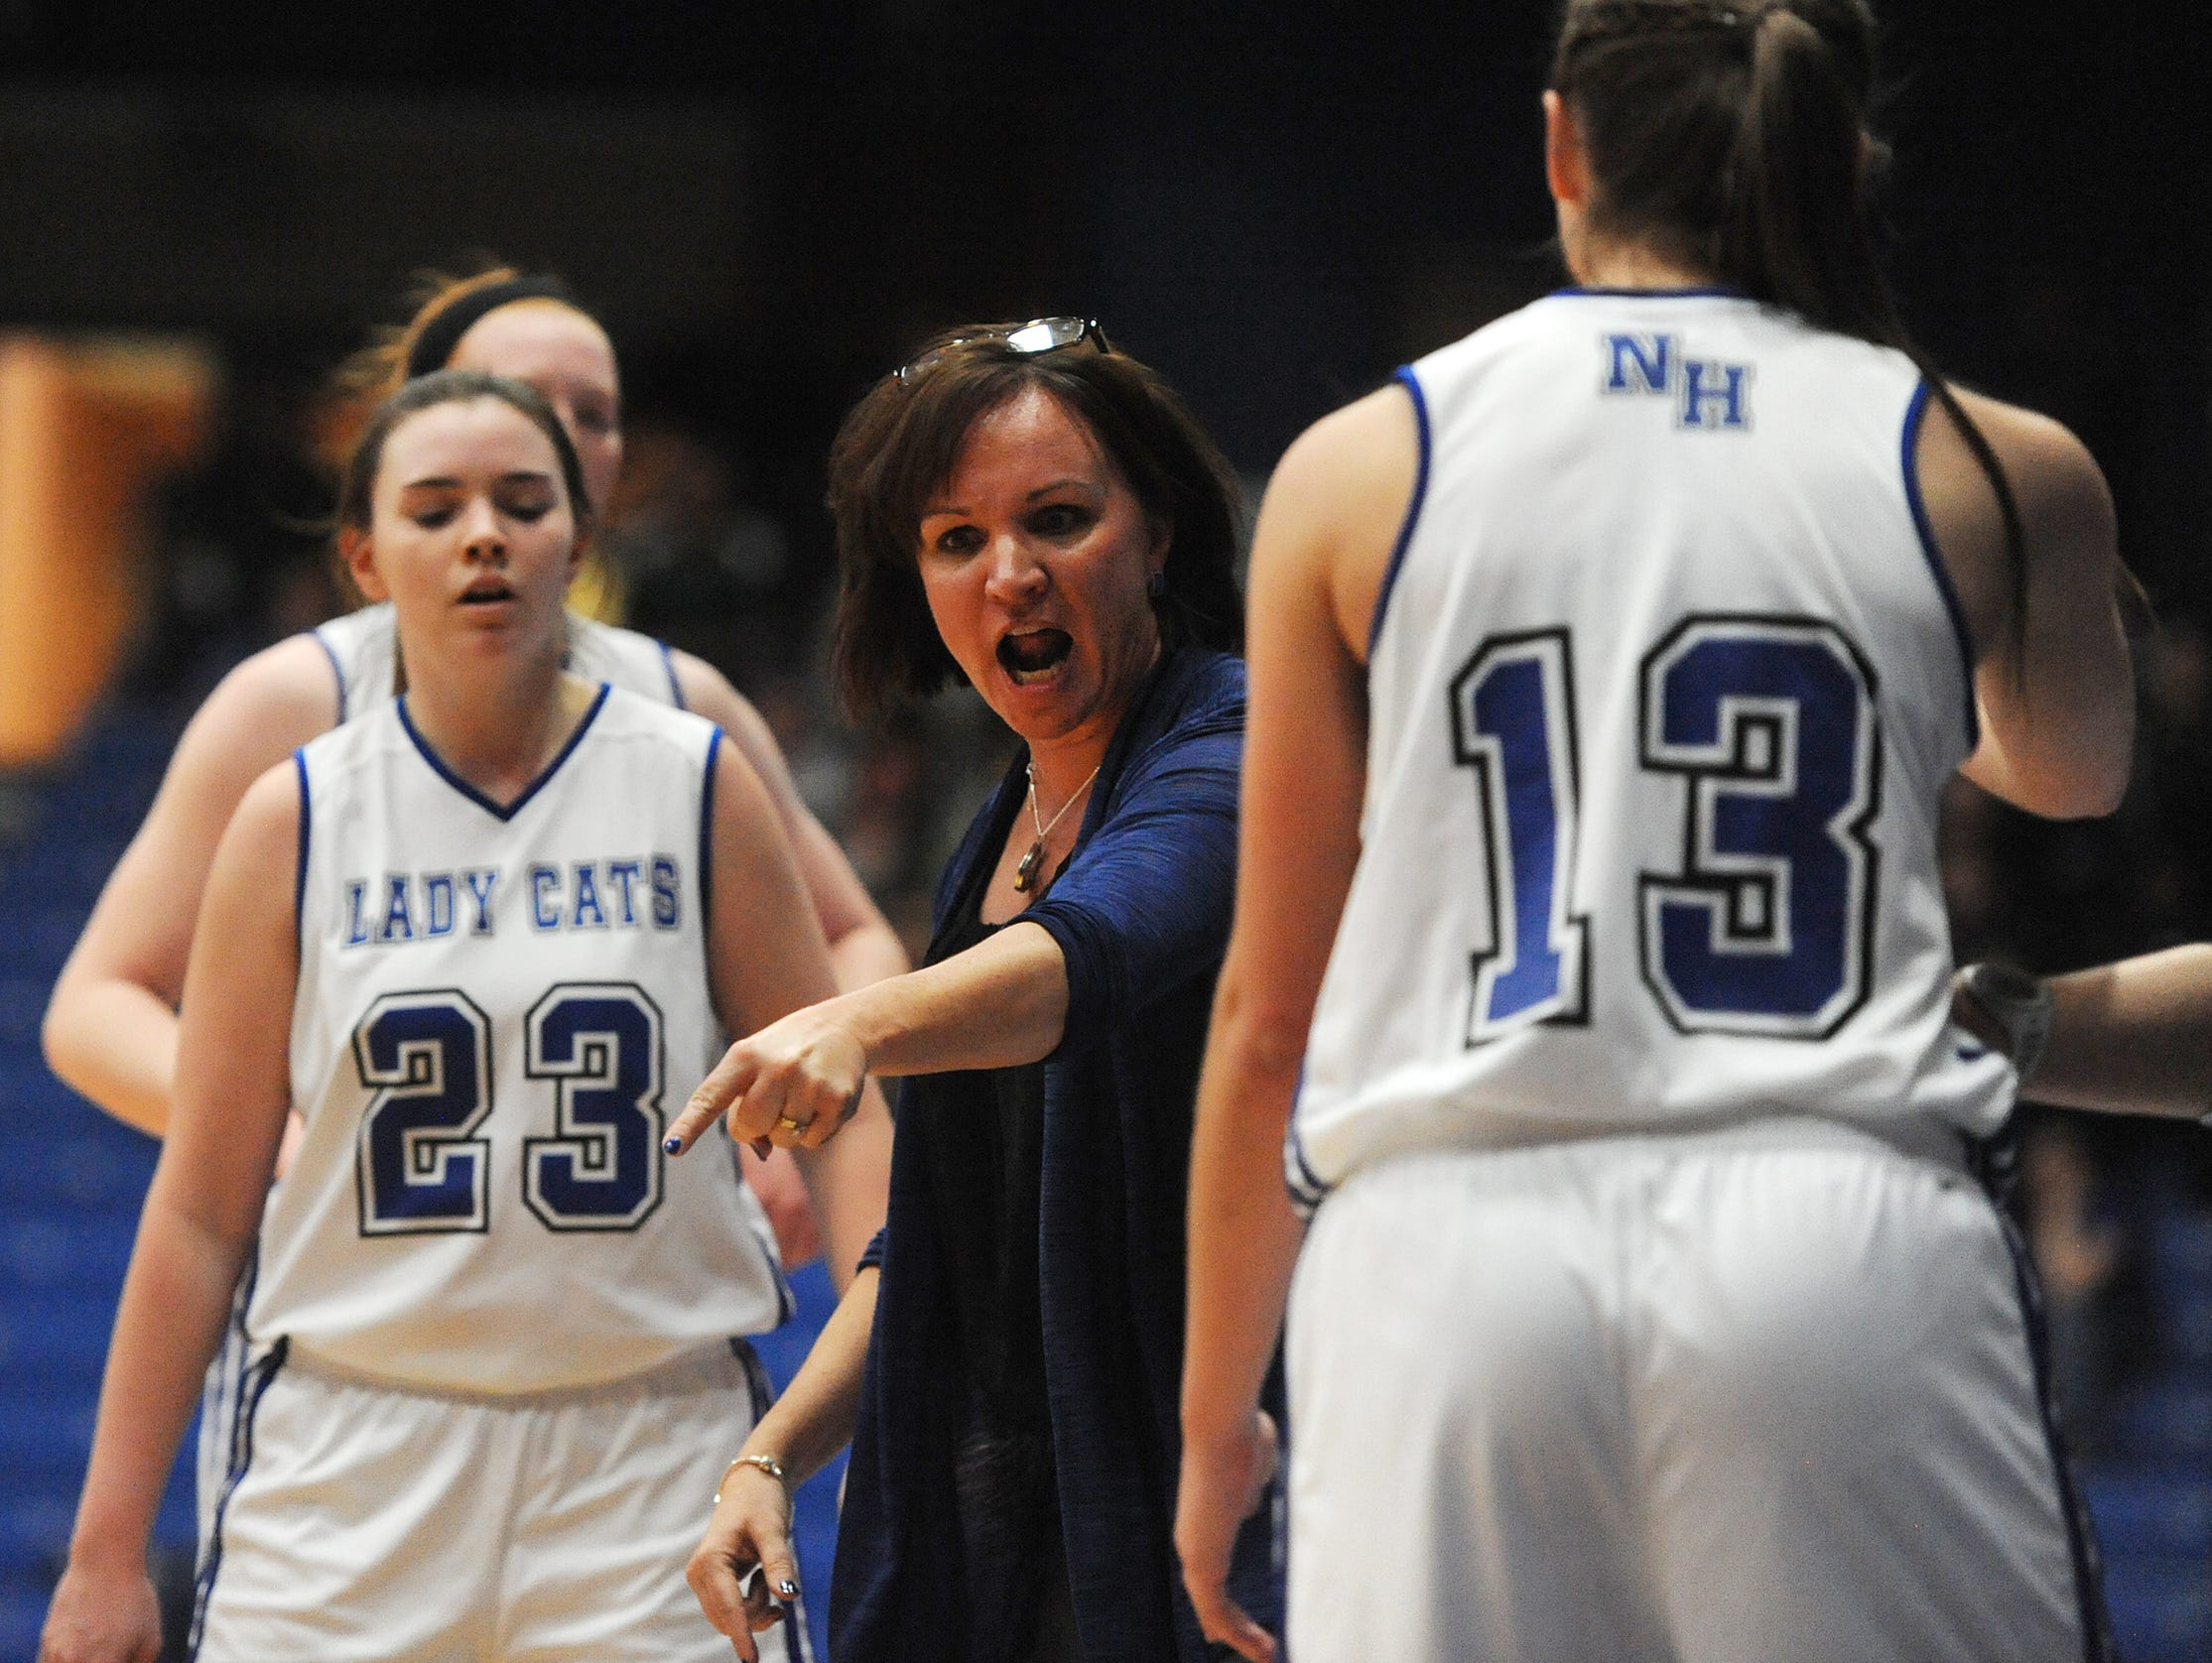 North Harrison head coach Missy Voyles (center) gives her Lady Cats instructions during a timeout against Greensburg on Saturday during the Regional 8 Tournament at Charlestown High School. North Harrison won 46-42. Photo by David Lee Hartlage/Special to the Courier-journal. Feb.13, 2016